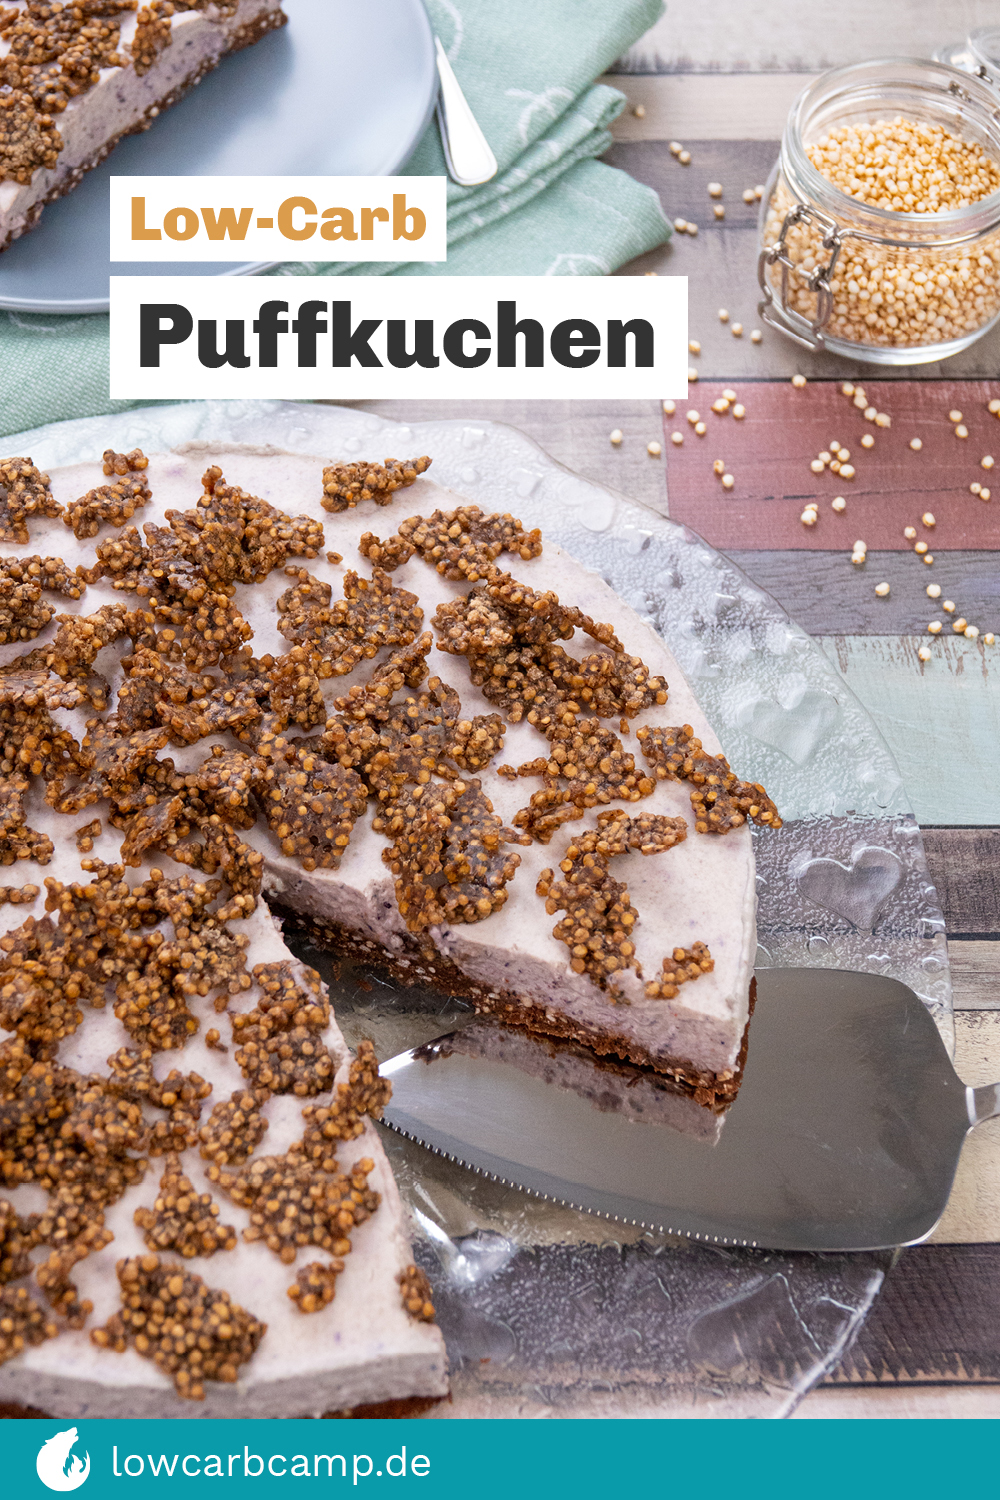 Low-Carb Puffkuchen